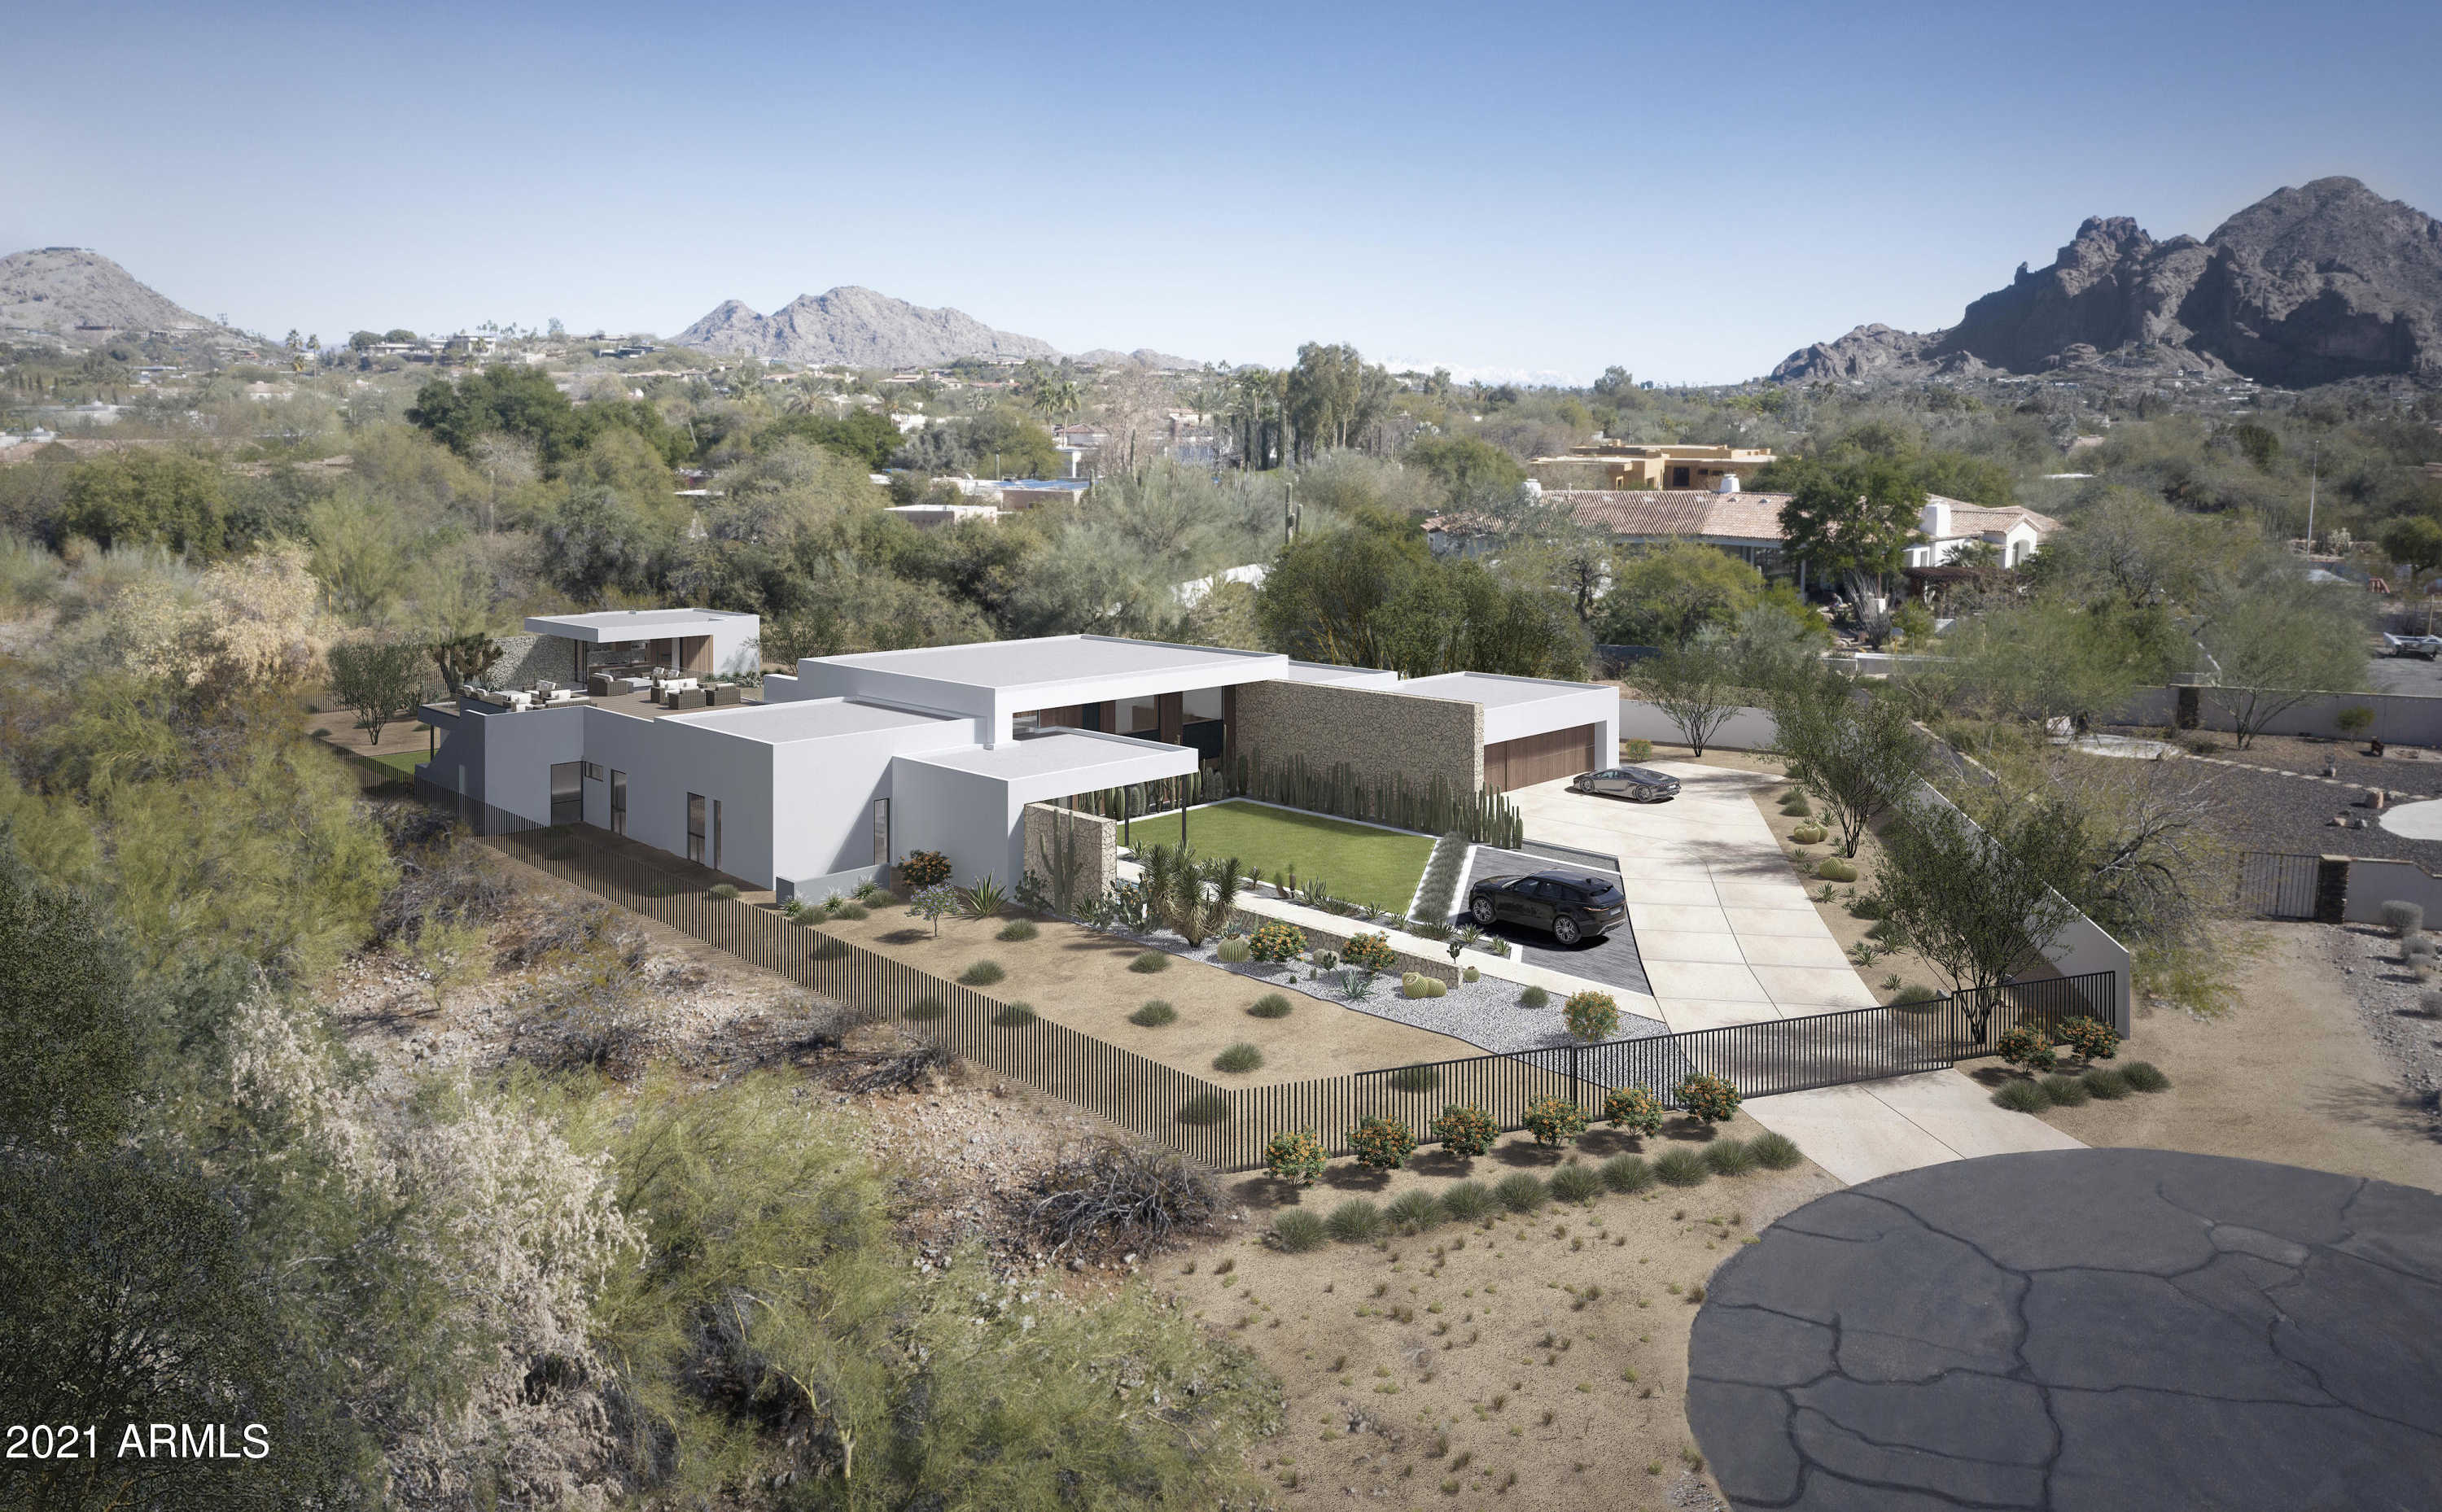 $7,250,000 - 6Br/7Ba - Home for Sale in Viewland, Paradise Valley